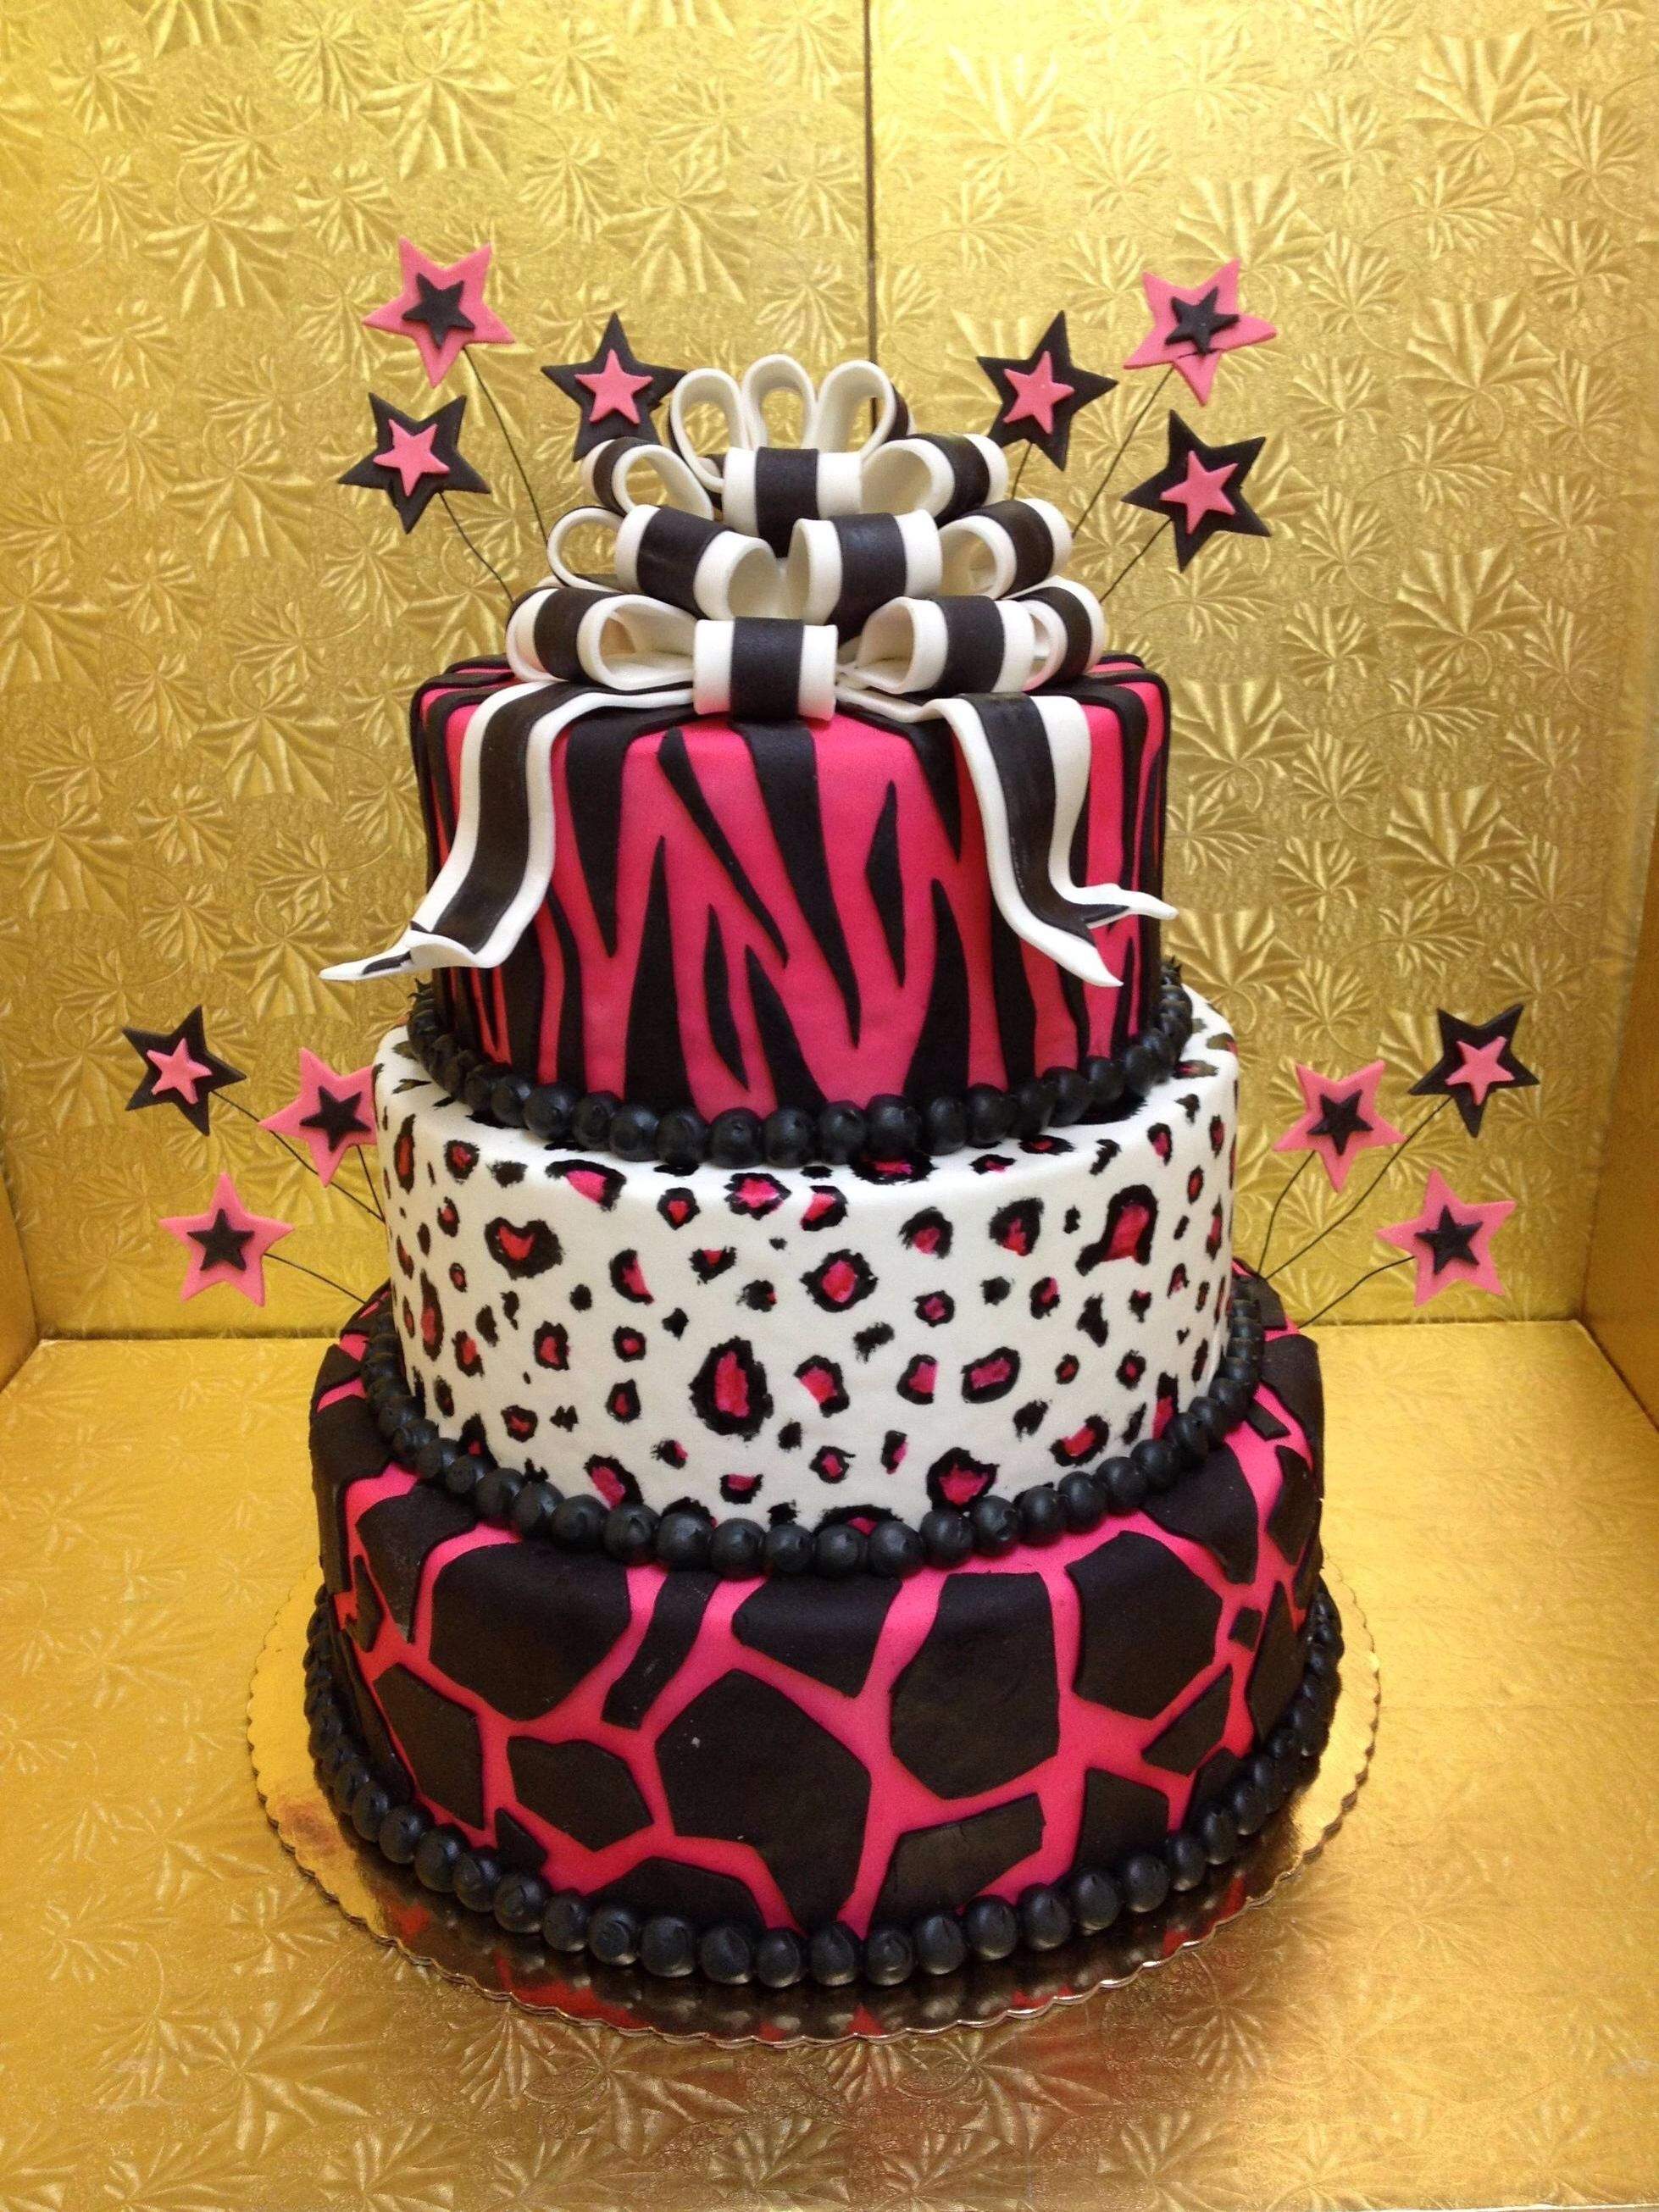 A teenage girl would love this cake for her 16th birthday ...